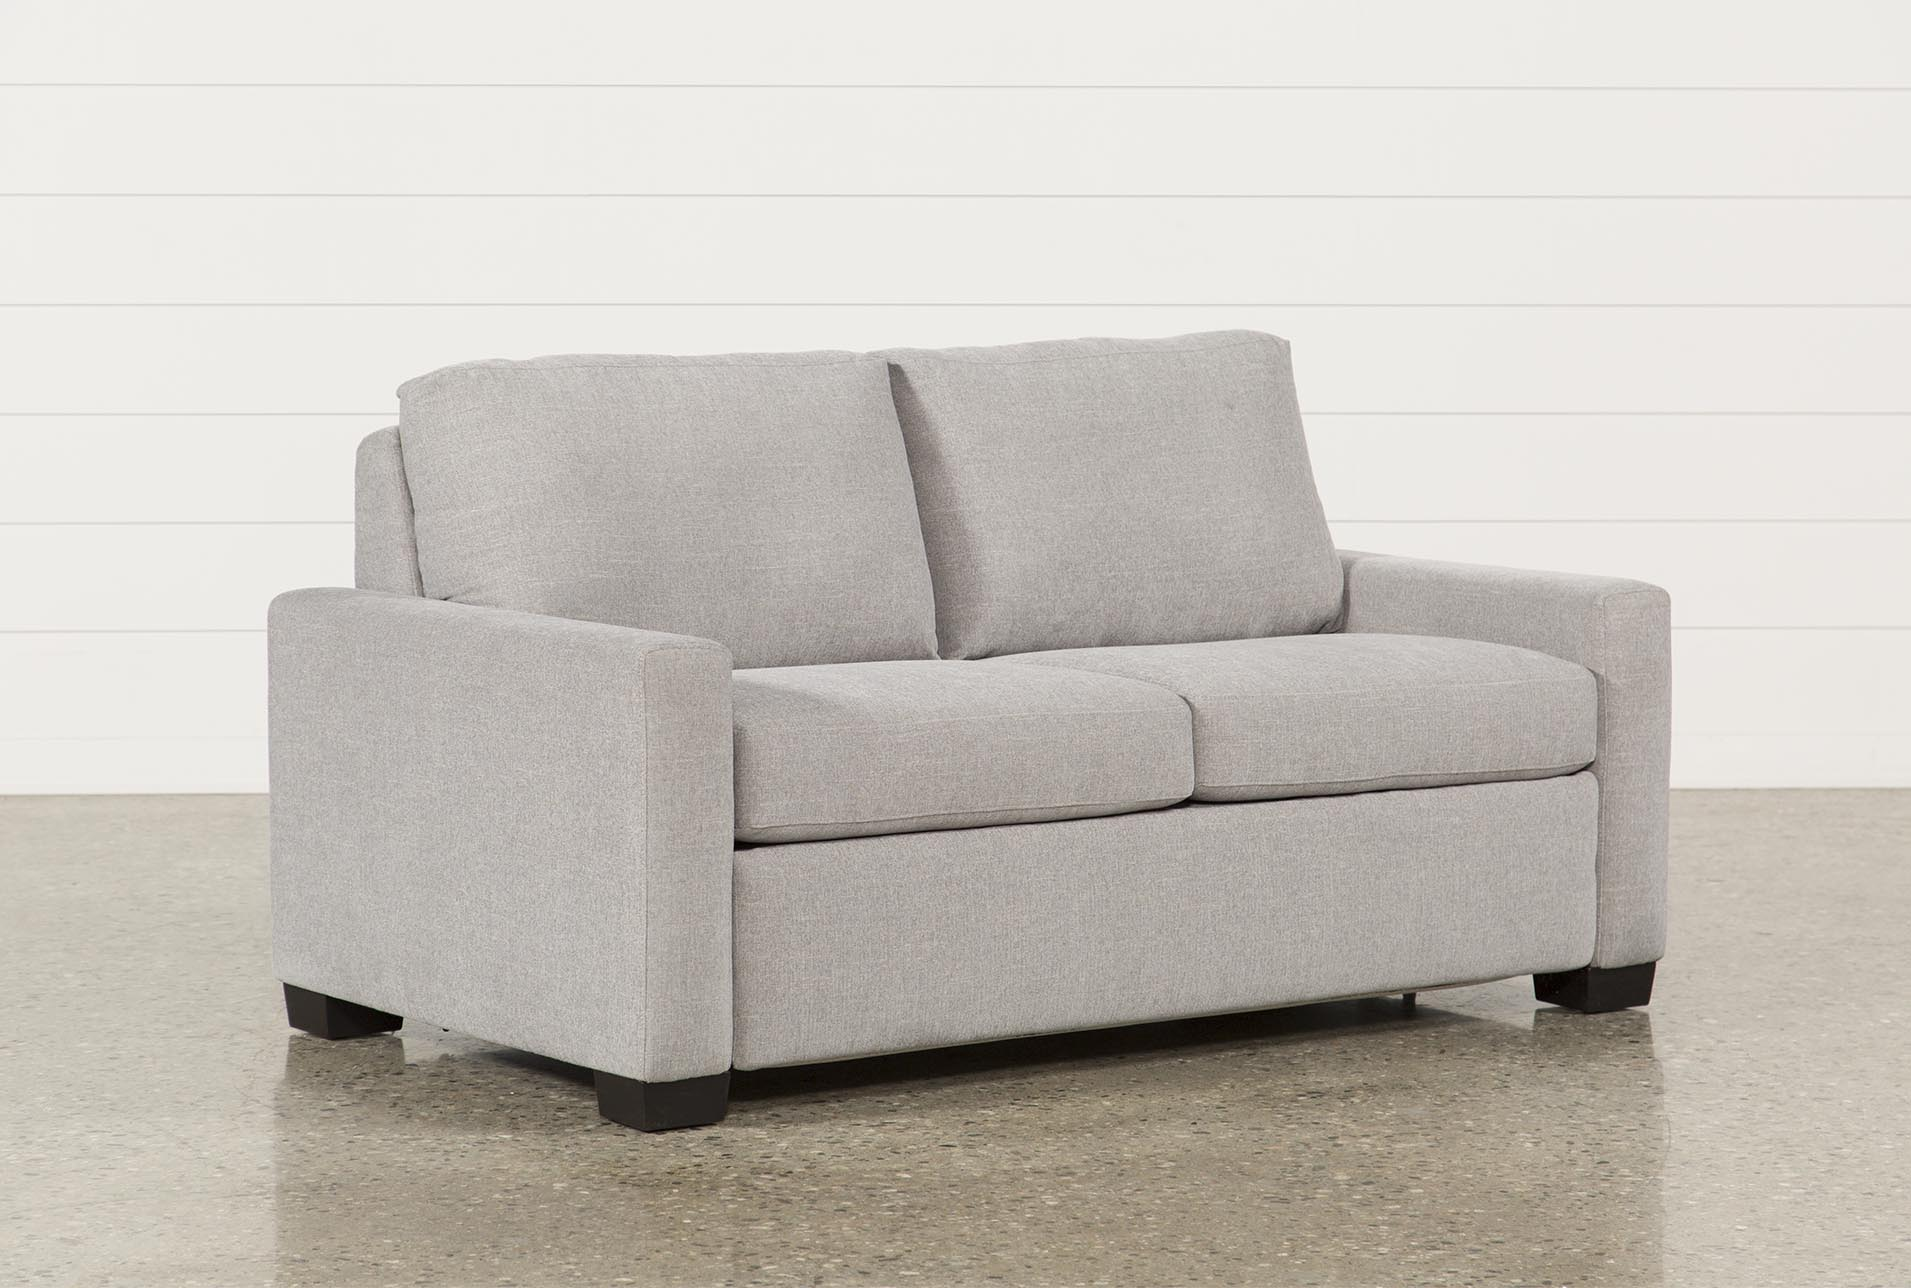 Mackenzie Silverpine Full Sofa Sleeper (Qty: 1) Has Been Successfully Added  To Your Cart.